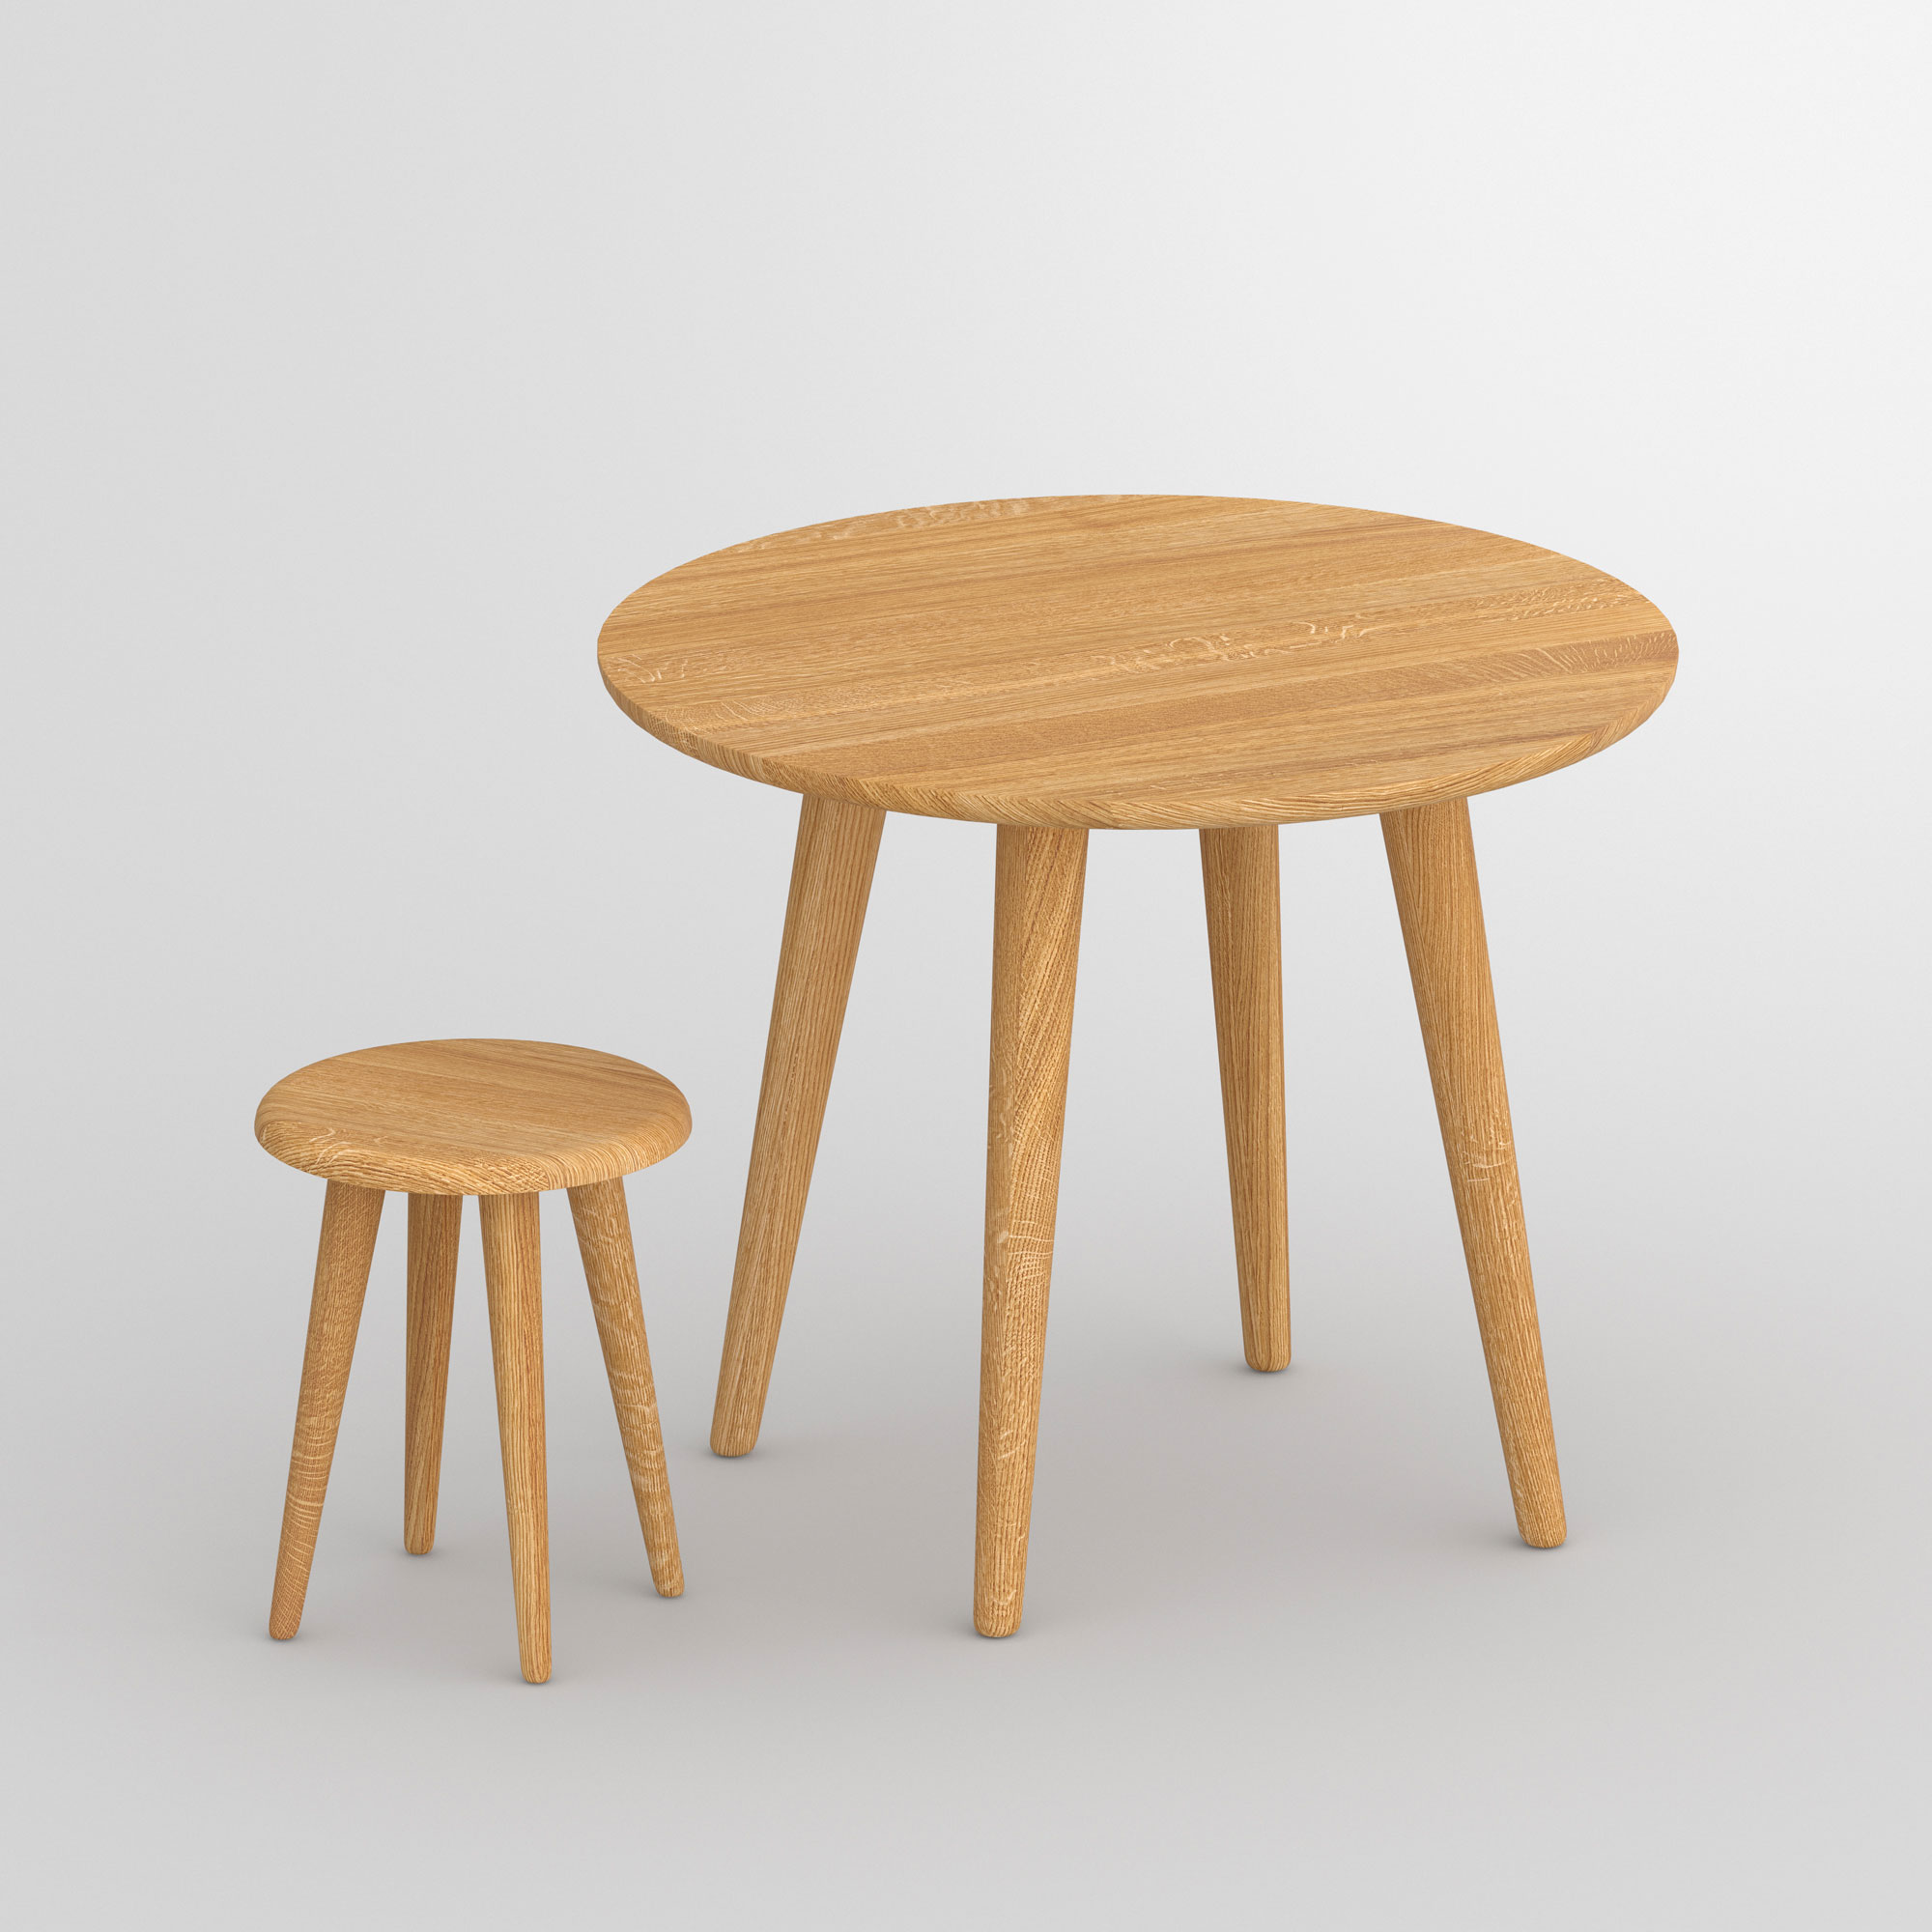 Round Wood Stool AMBIO ROUND vitamin-design custom made in solid wood by vitamin design